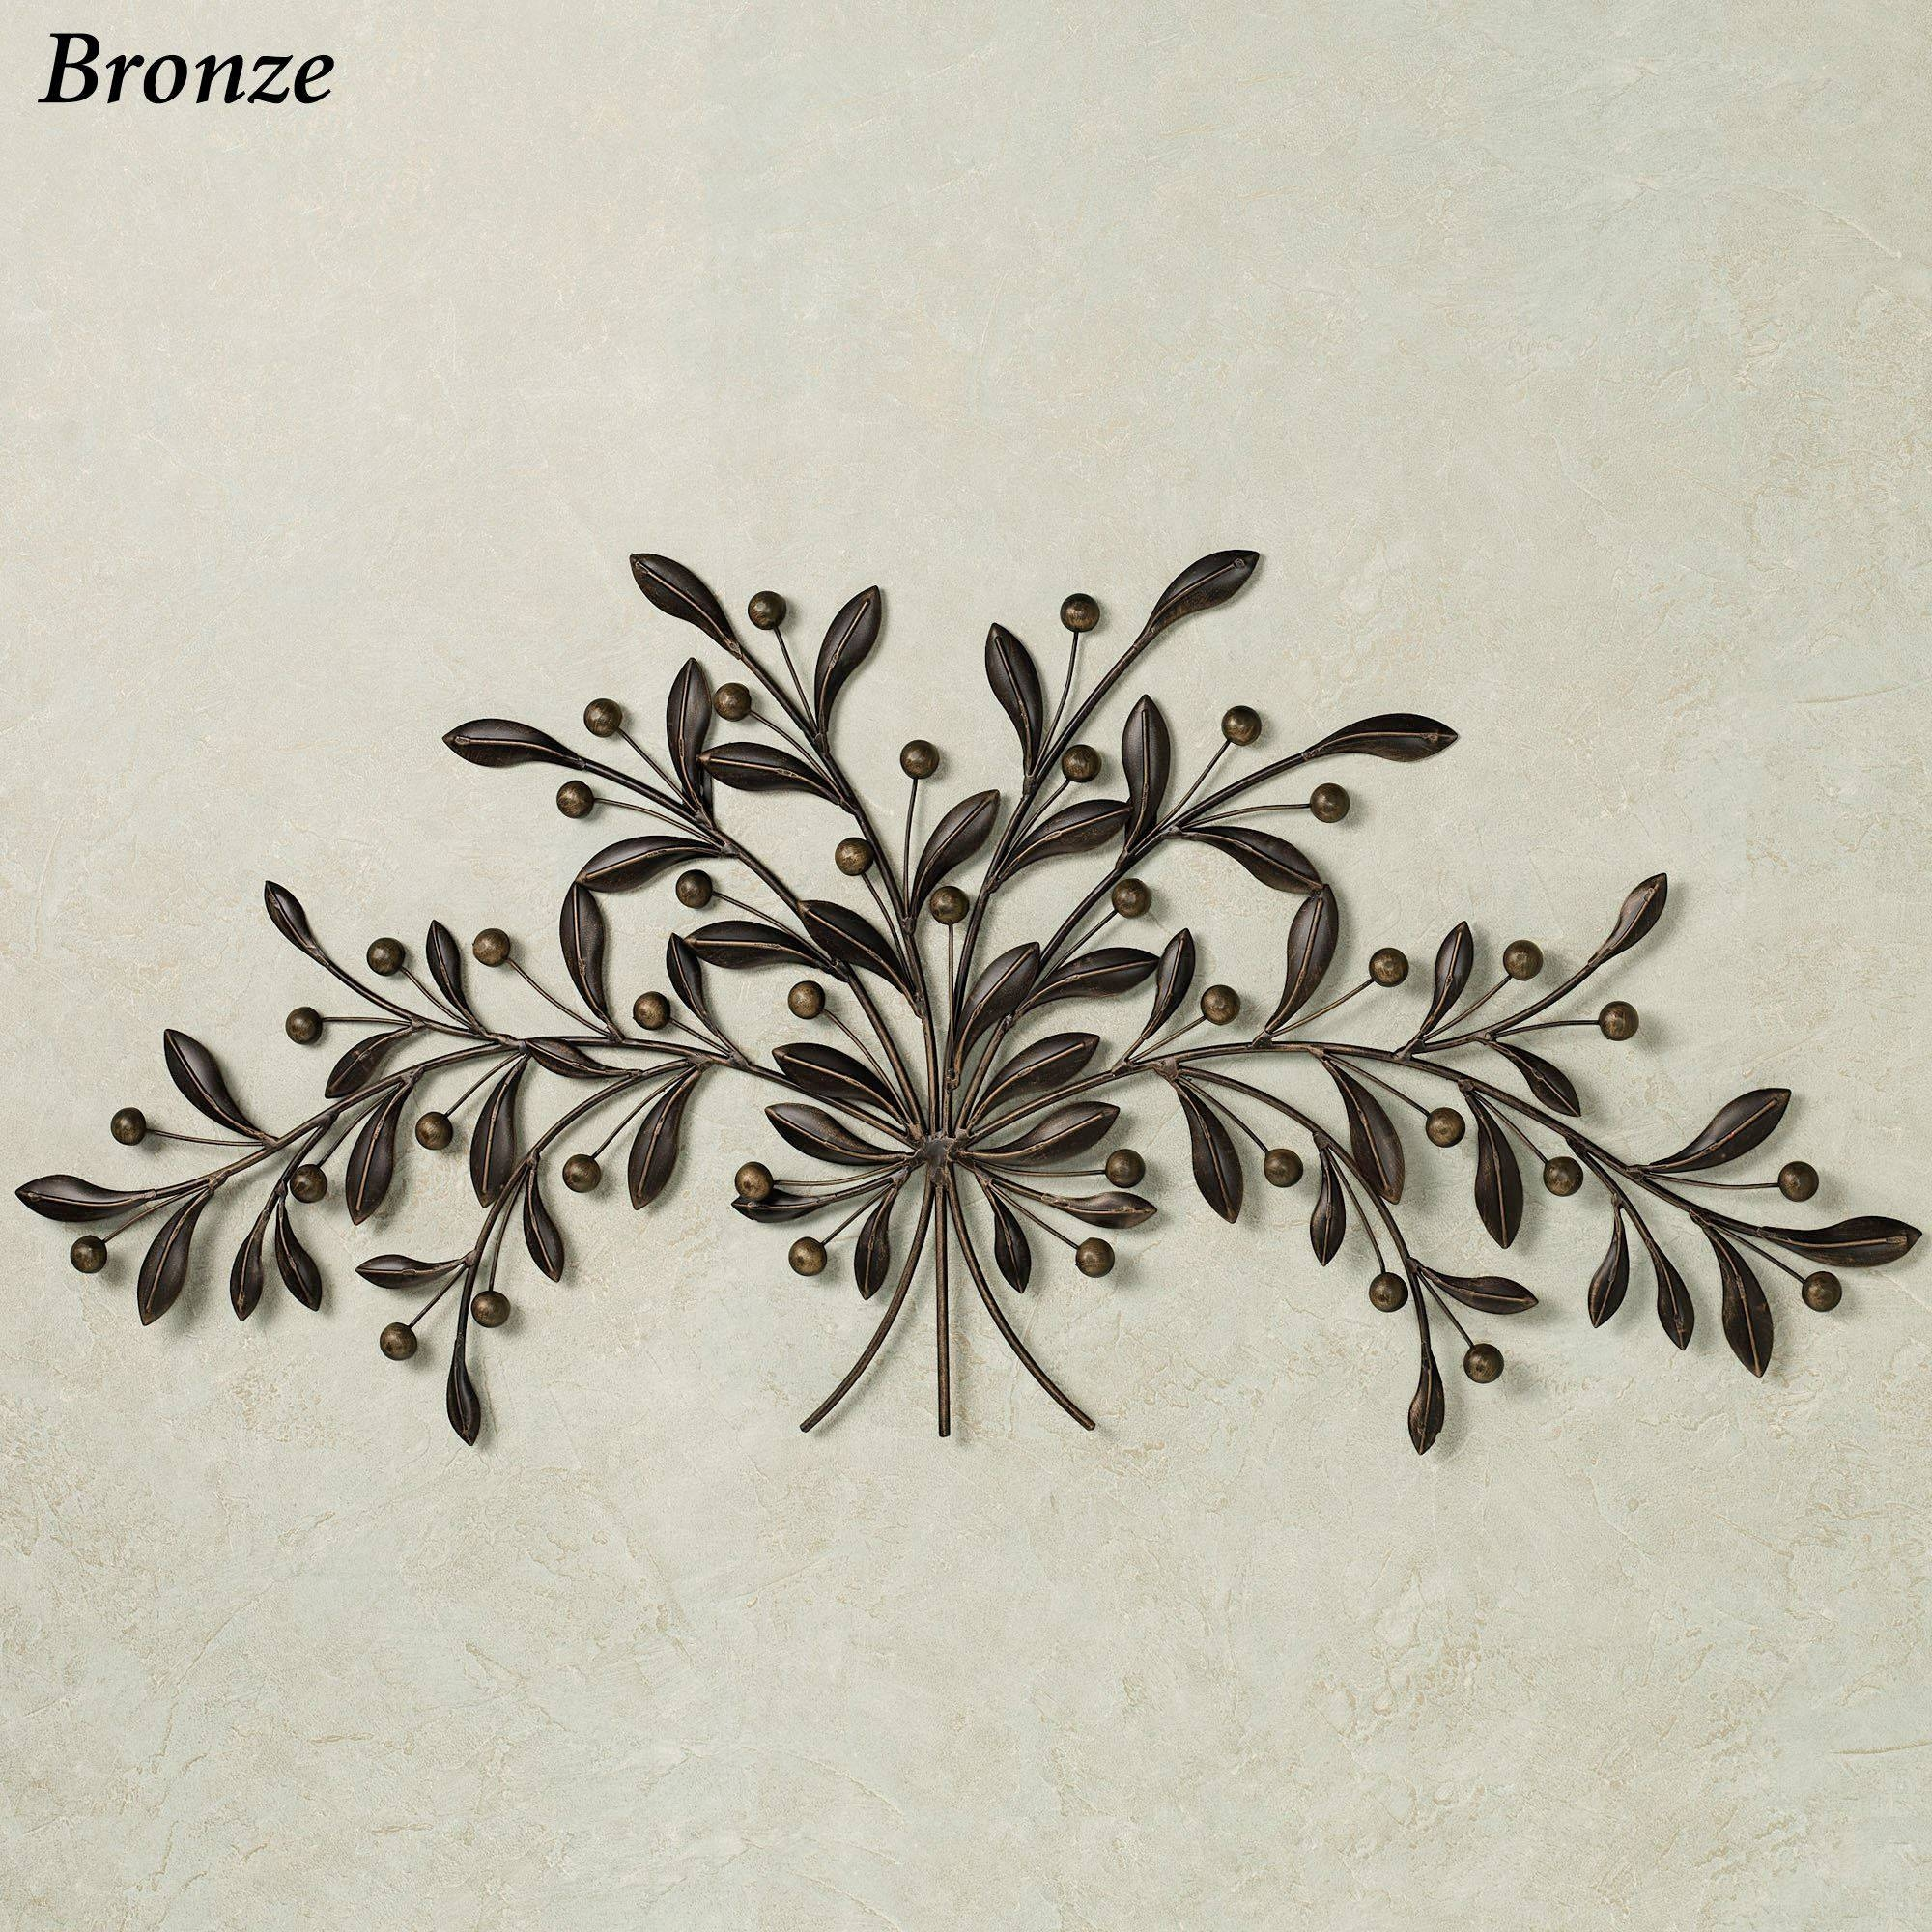 Cantabria Branch Metal Wall Art Spray In Best And Newest Metal Wall Art Branches (View 11 of 20)